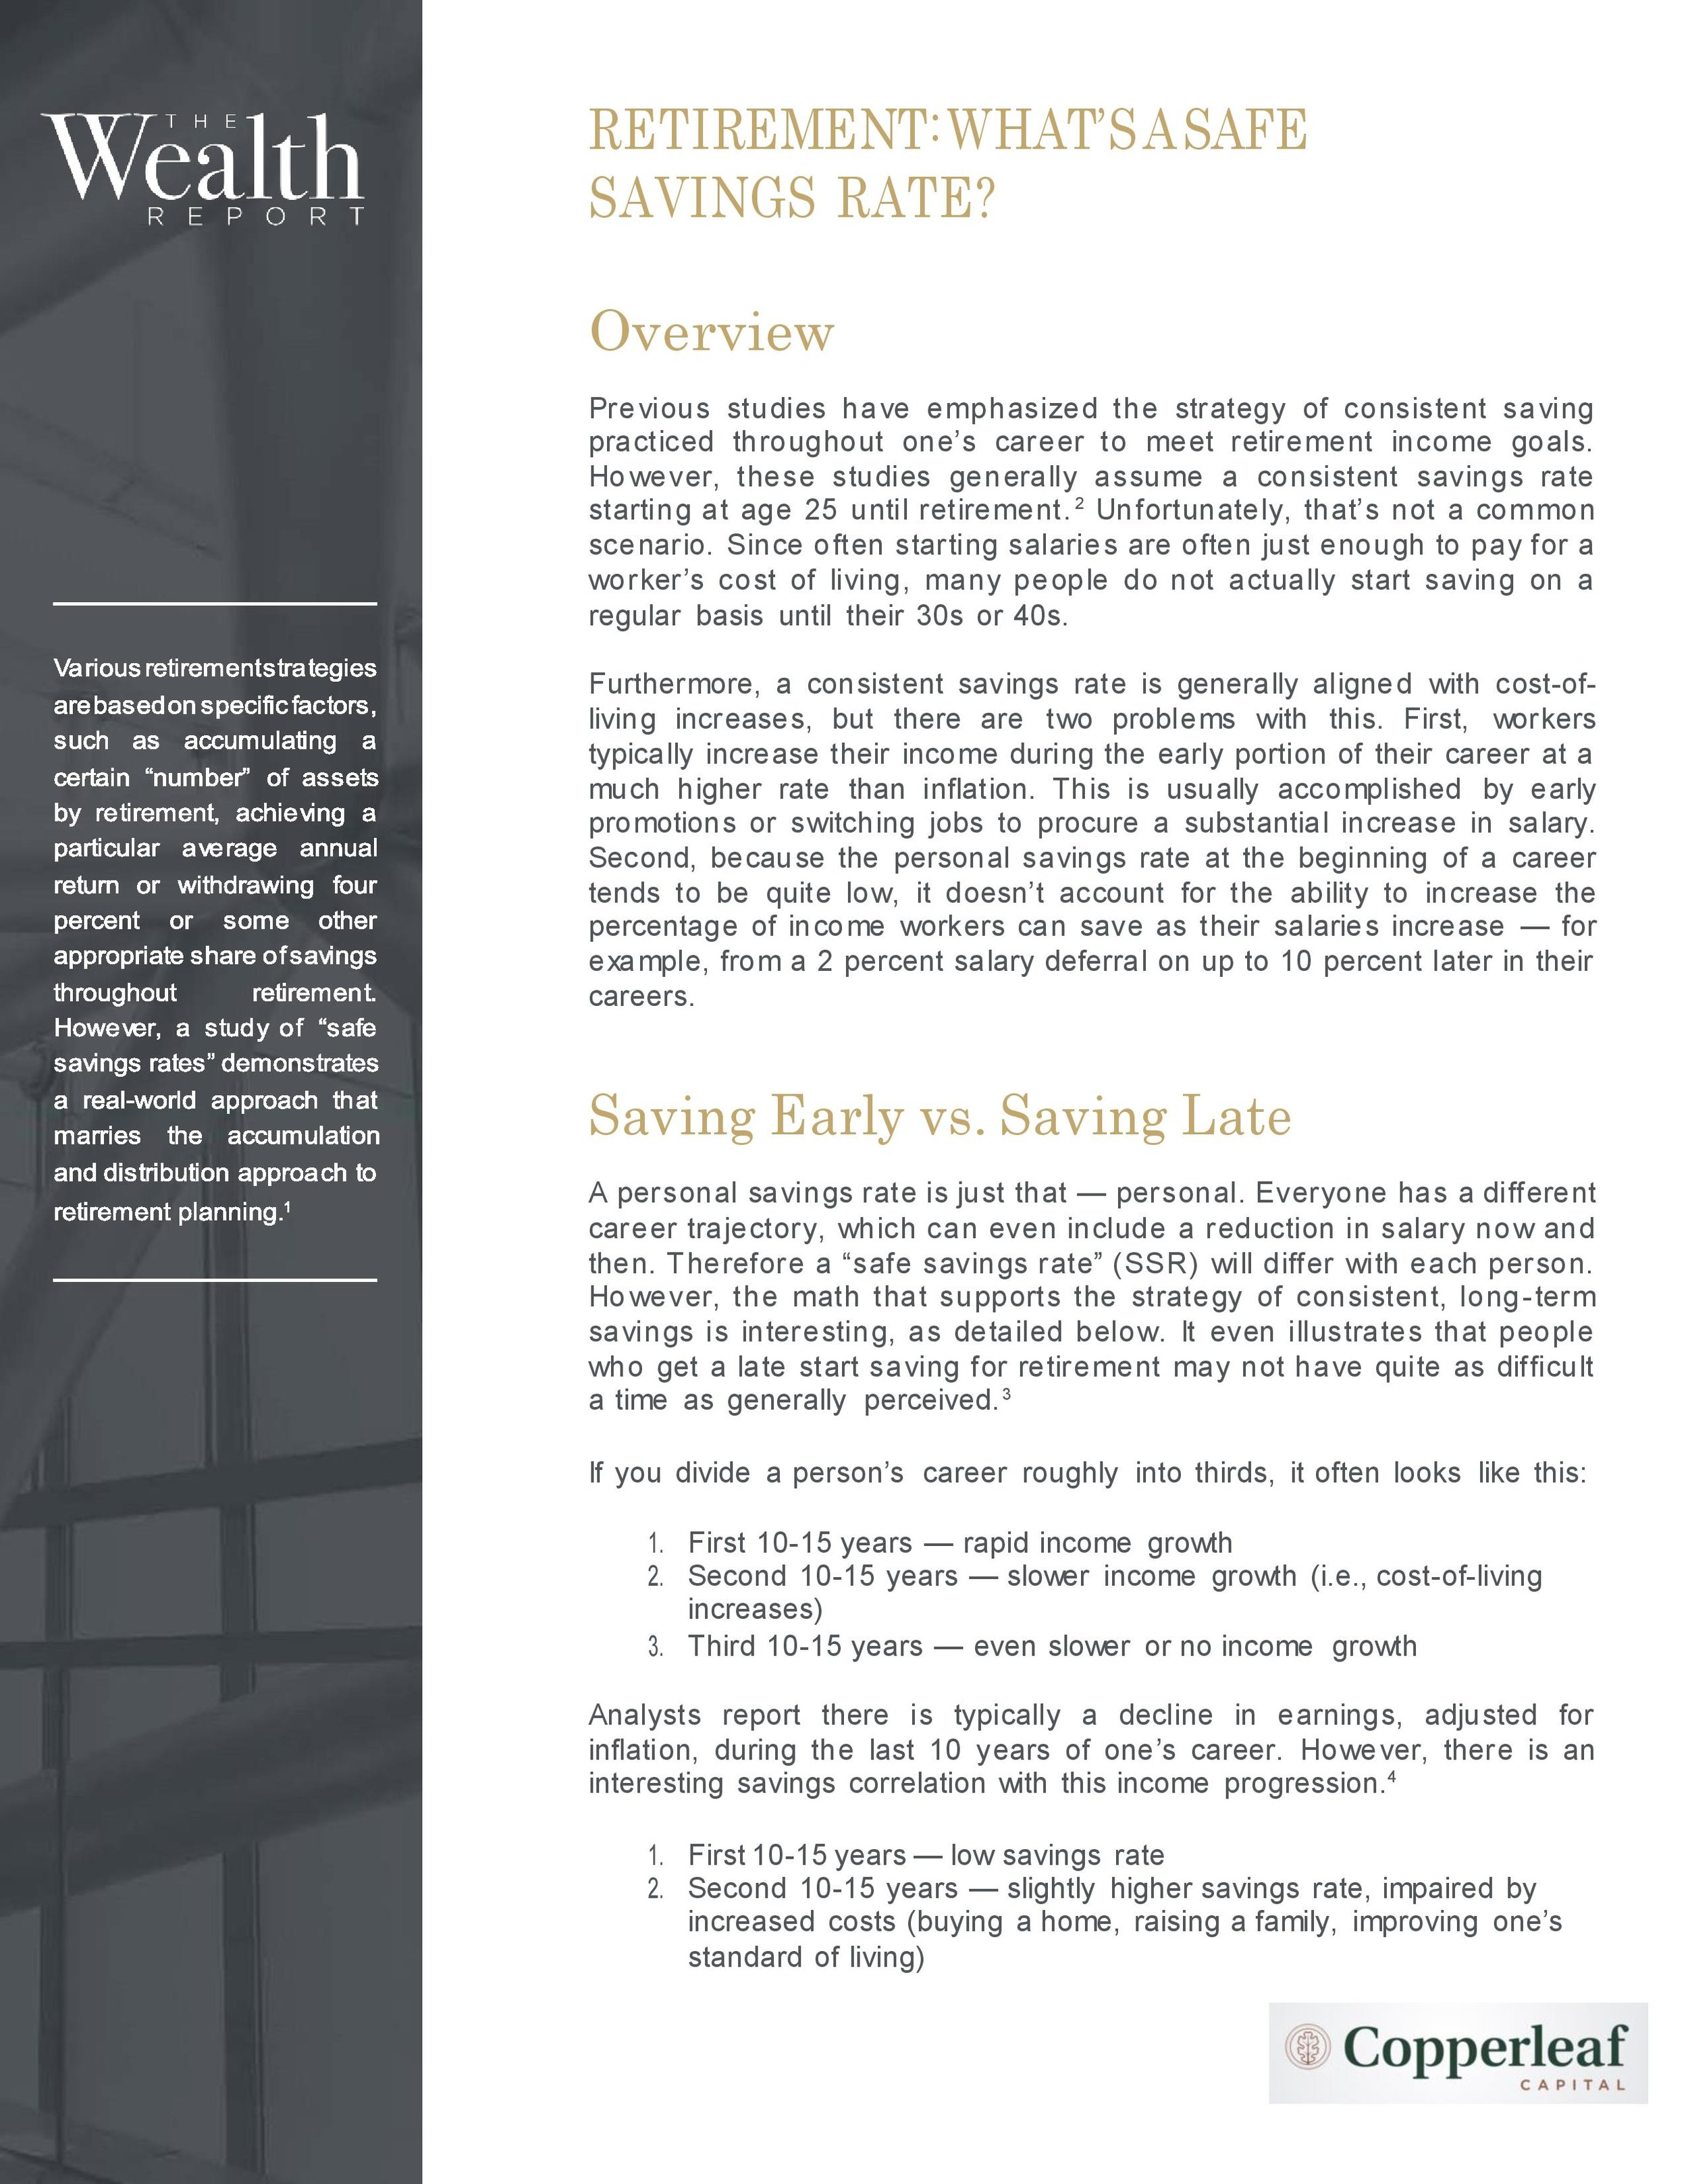 retirement-whats-a-safe-savings-rate (1)-page-001.jpg